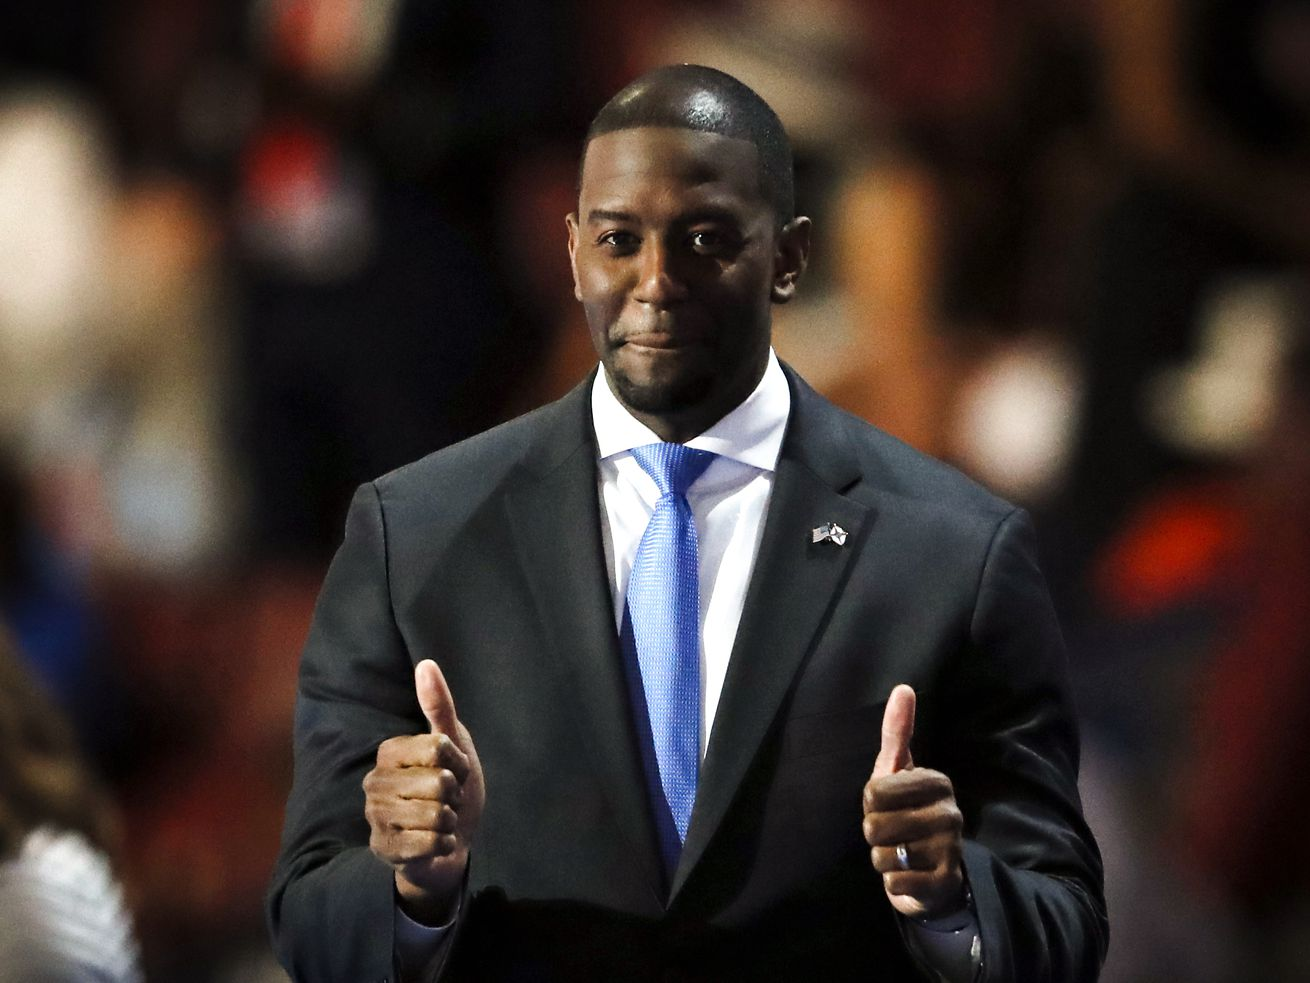 Tallahassee Mayor Andrew Gillum speaking during the third day of the Democratic National Convention in Philadelphia on July 27, 2016.